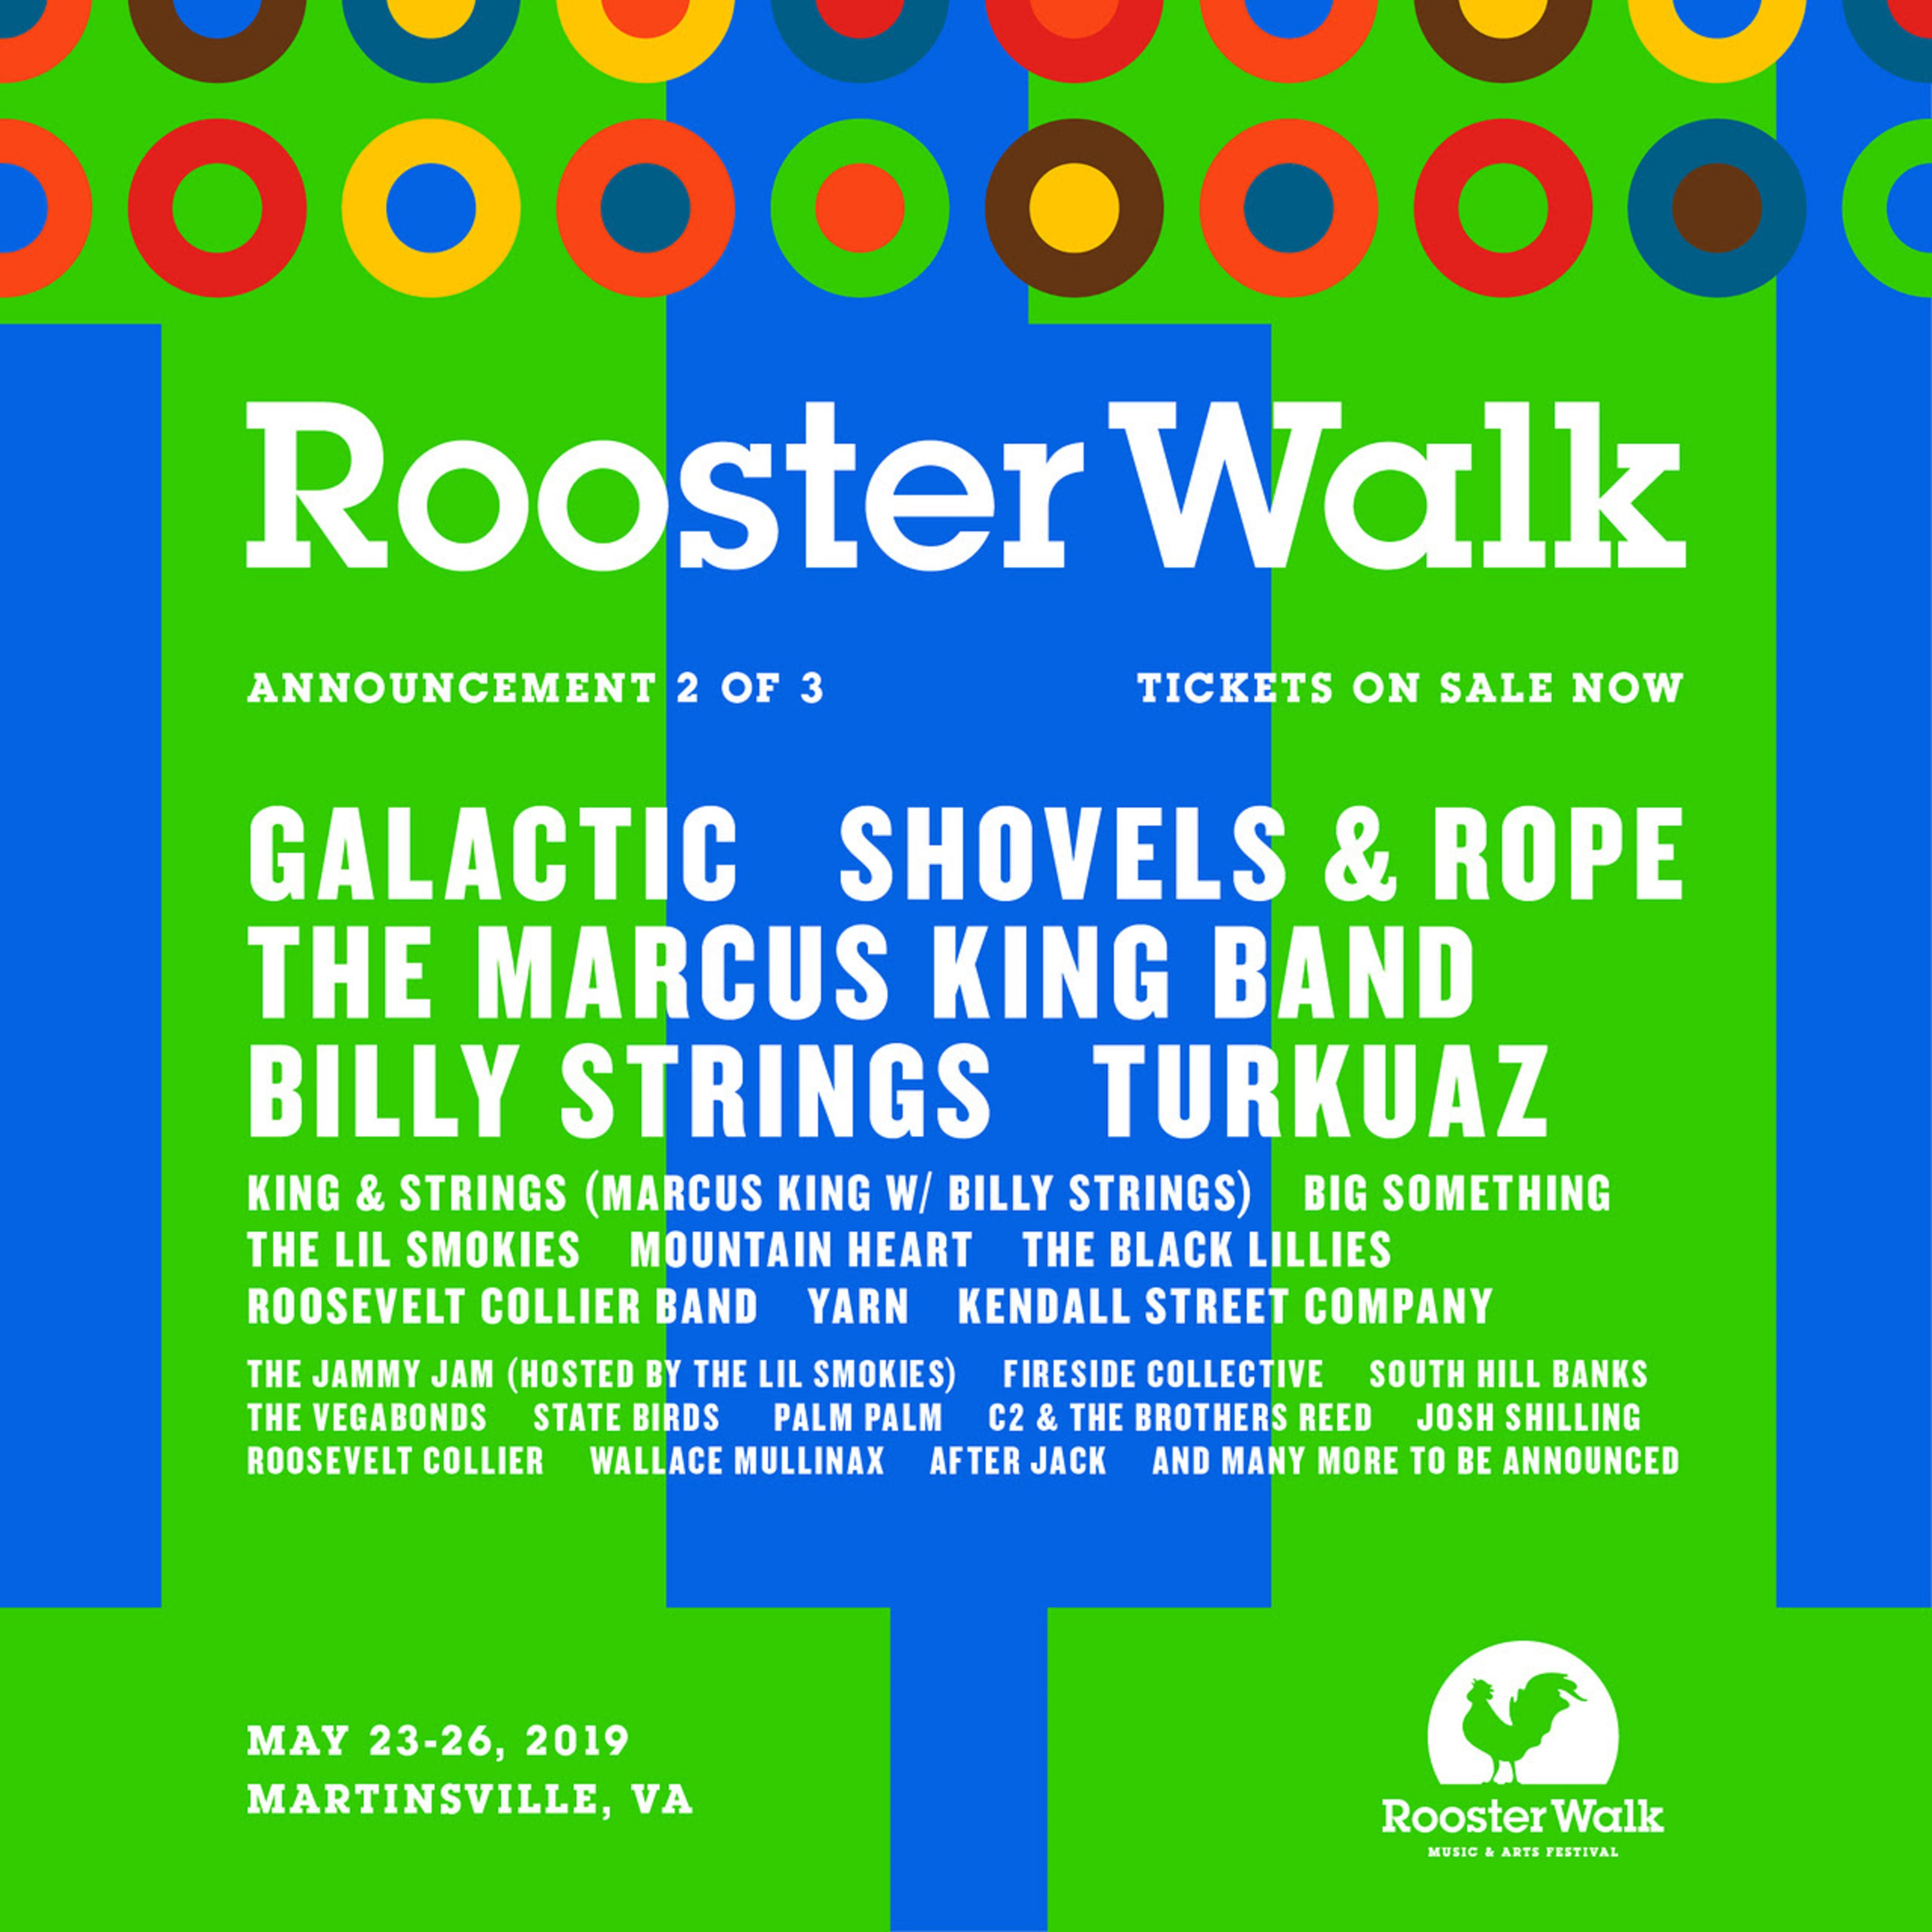 Rooster Walk Reveals 11th Annual Lineup